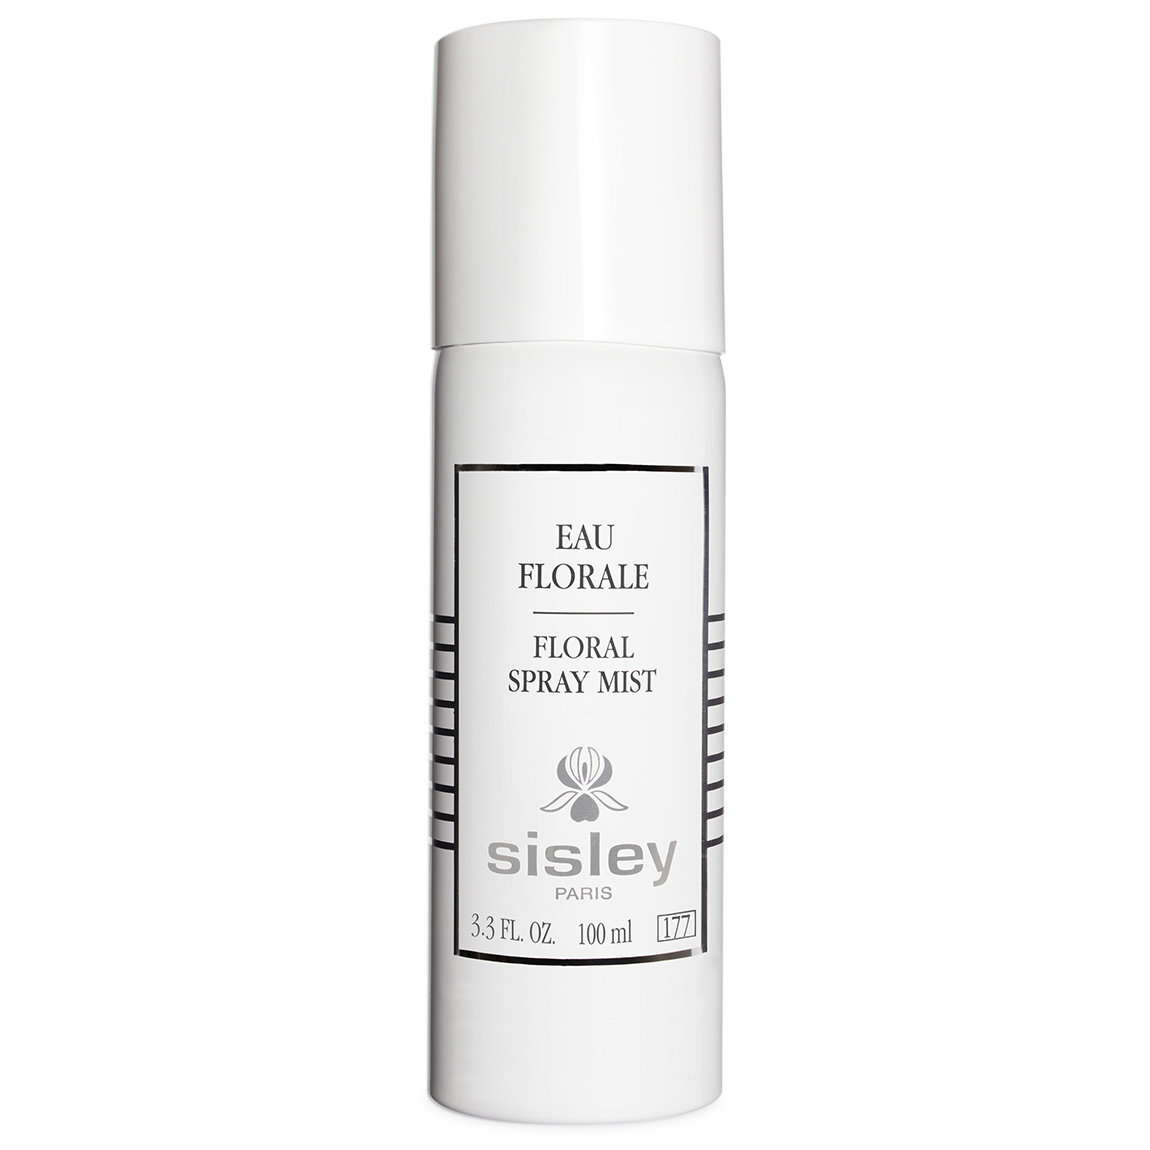 Sisley-Paris Floral Spray Mist alternative view 1 - product swatch.